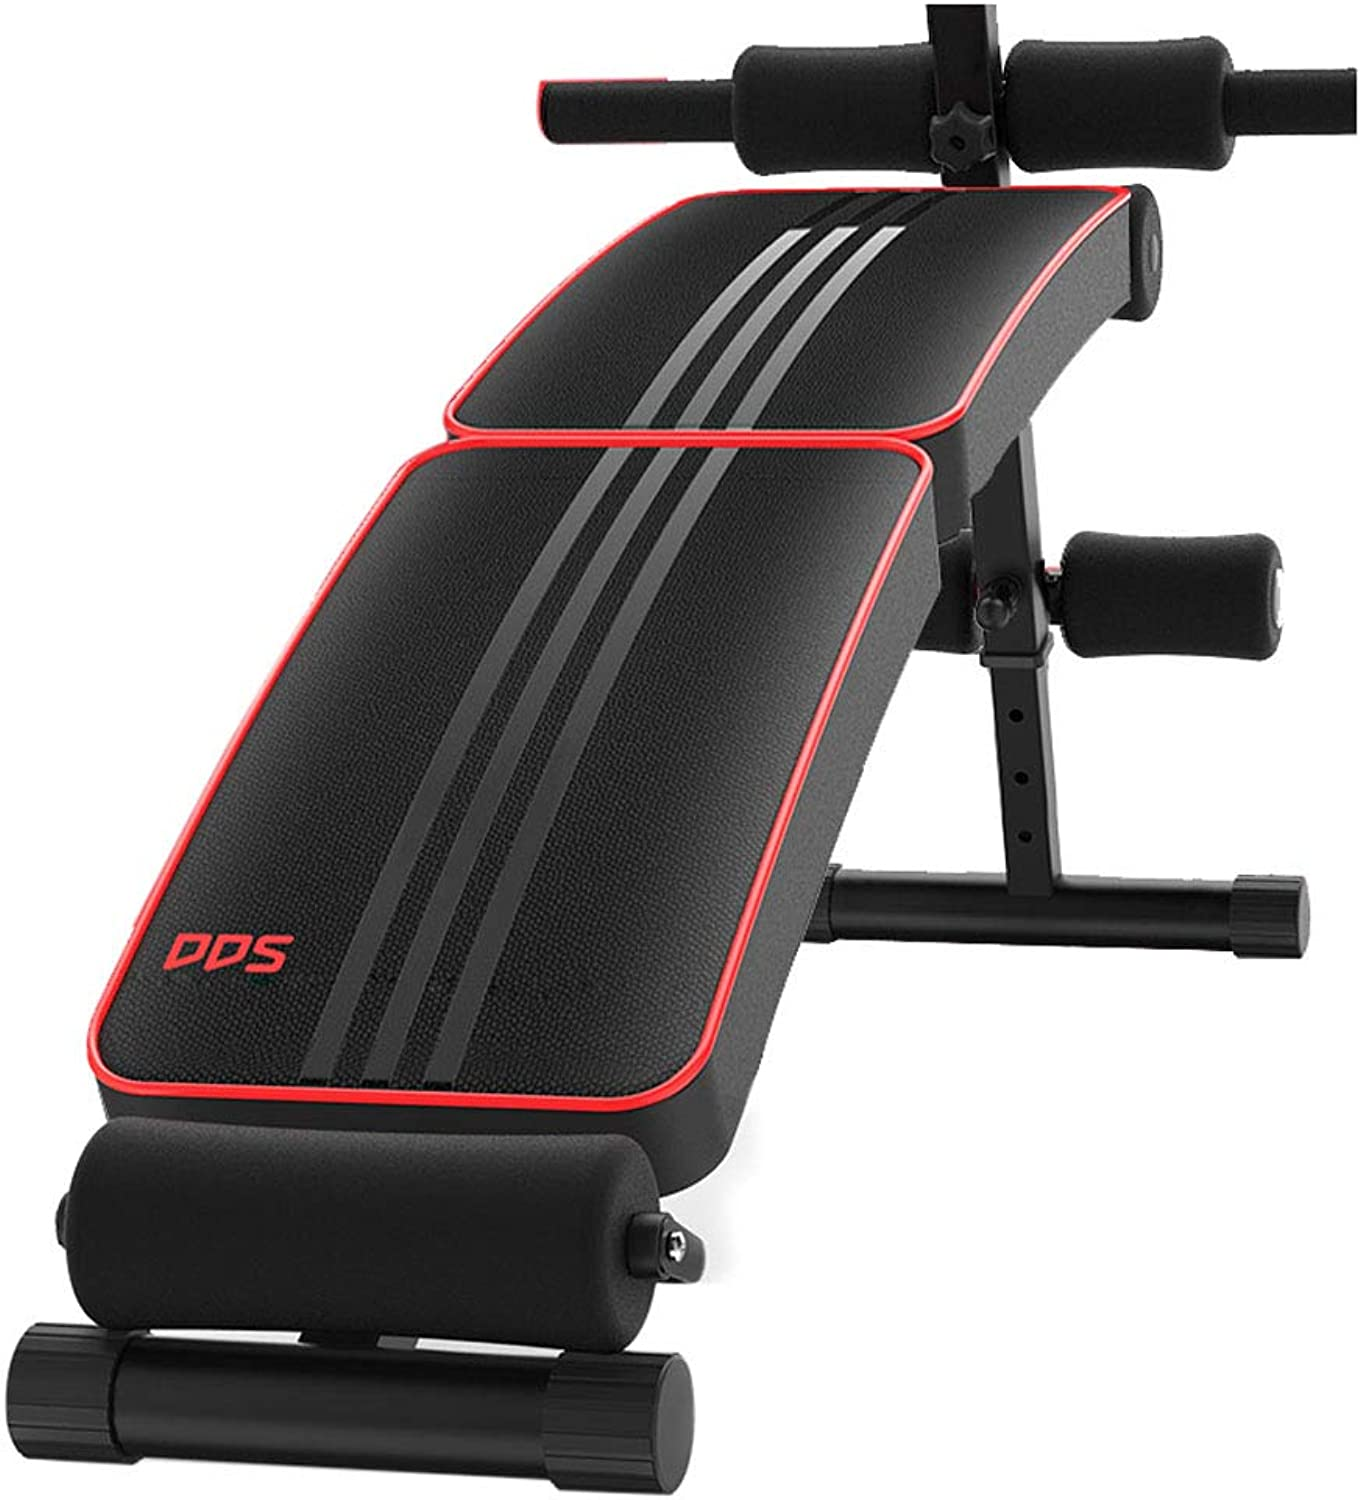 Mesurn MultiFunction Folding Supine Board, Solid Steel Material, SweatProof and Breathable, Home Professional Abdominal Device, SitUps Fitness Equipment